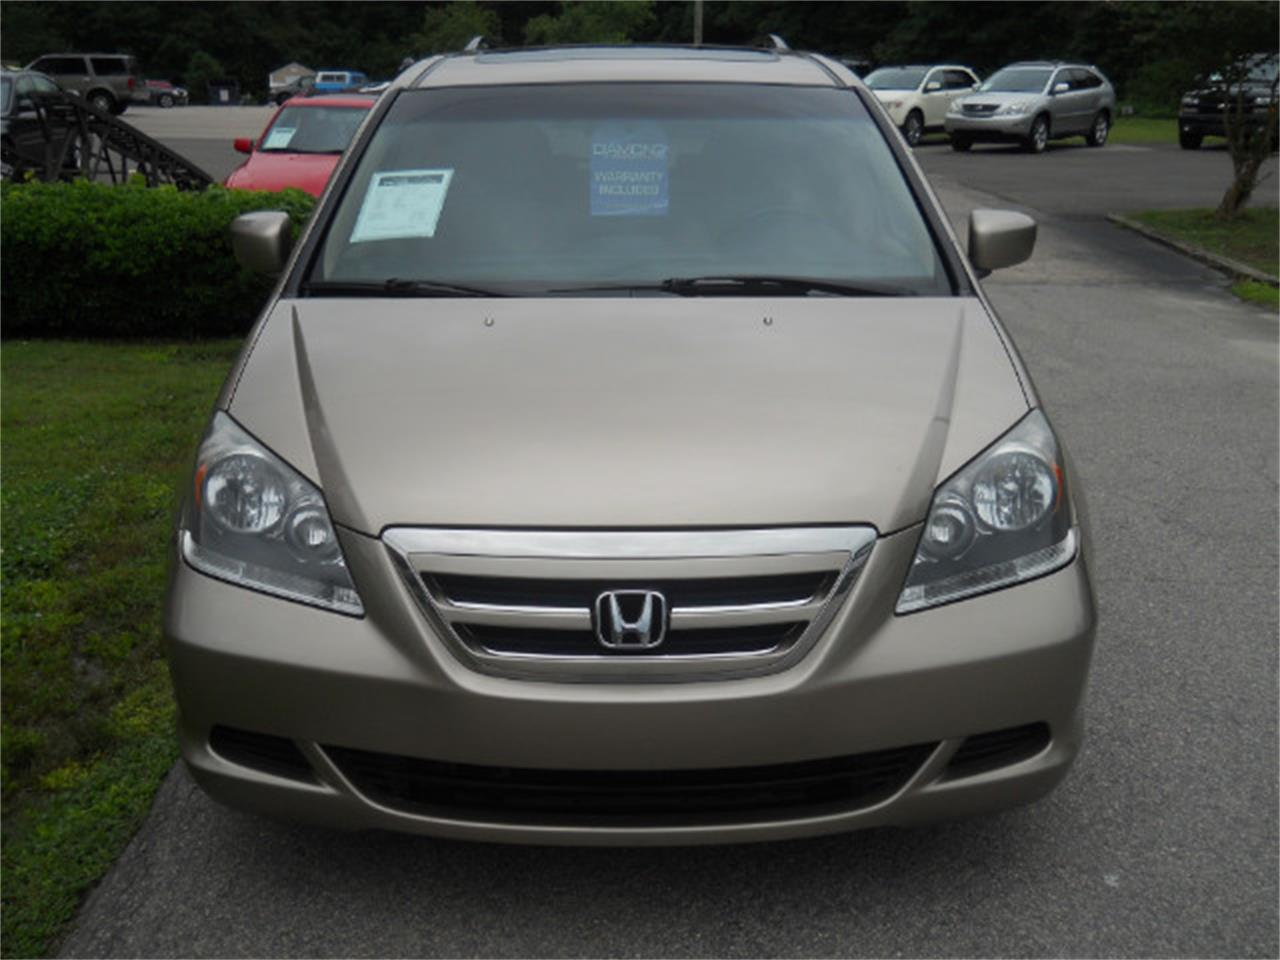 Large Picture of '06 Odyssey - $7,450.00 - L5SG